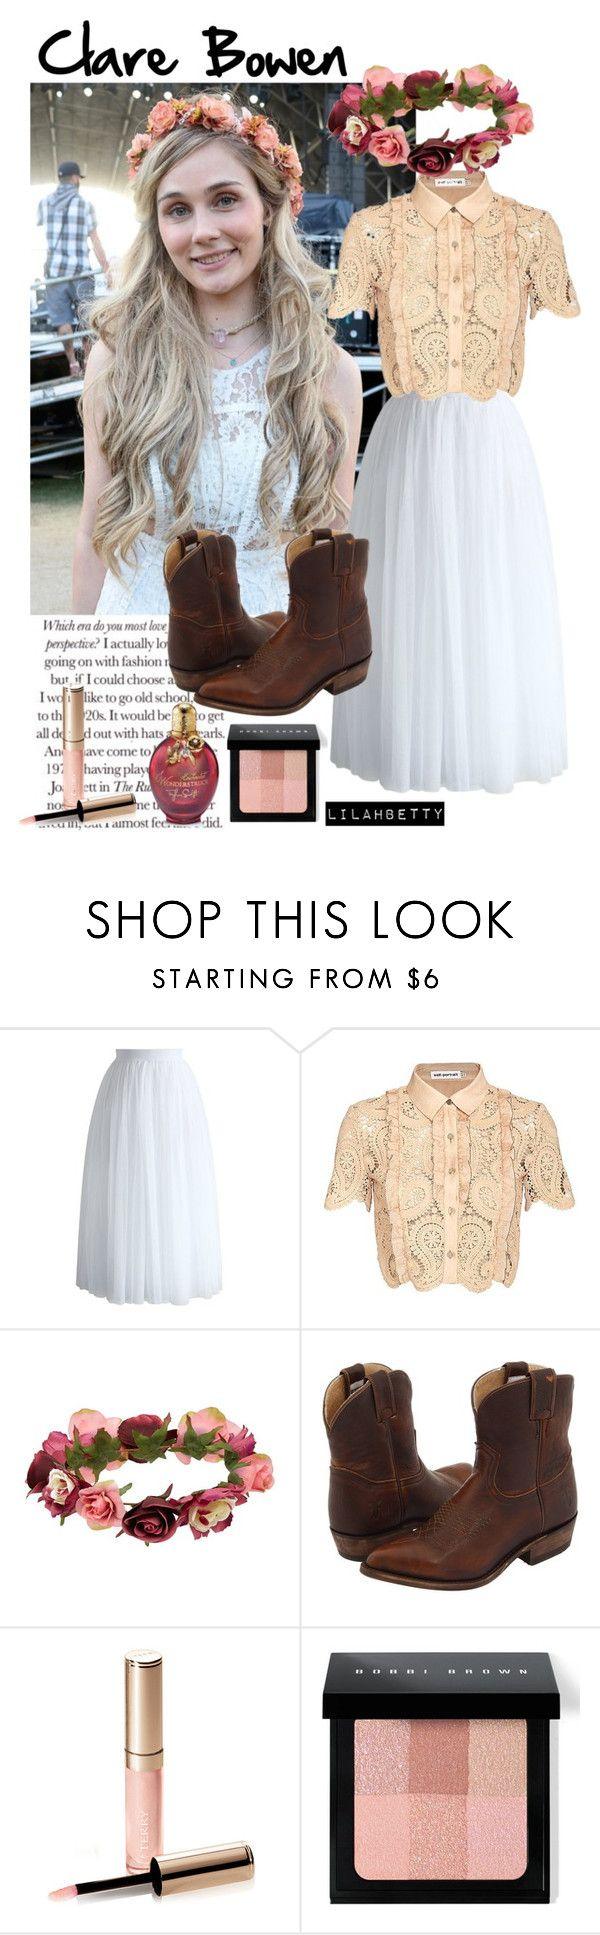 """Clare Bowen."" by lilahbetty on Polyvore featuring Chicwish, self-portrait, Forever 21, Frye, By Terry, Bobbi Brown Cosmetics and country"